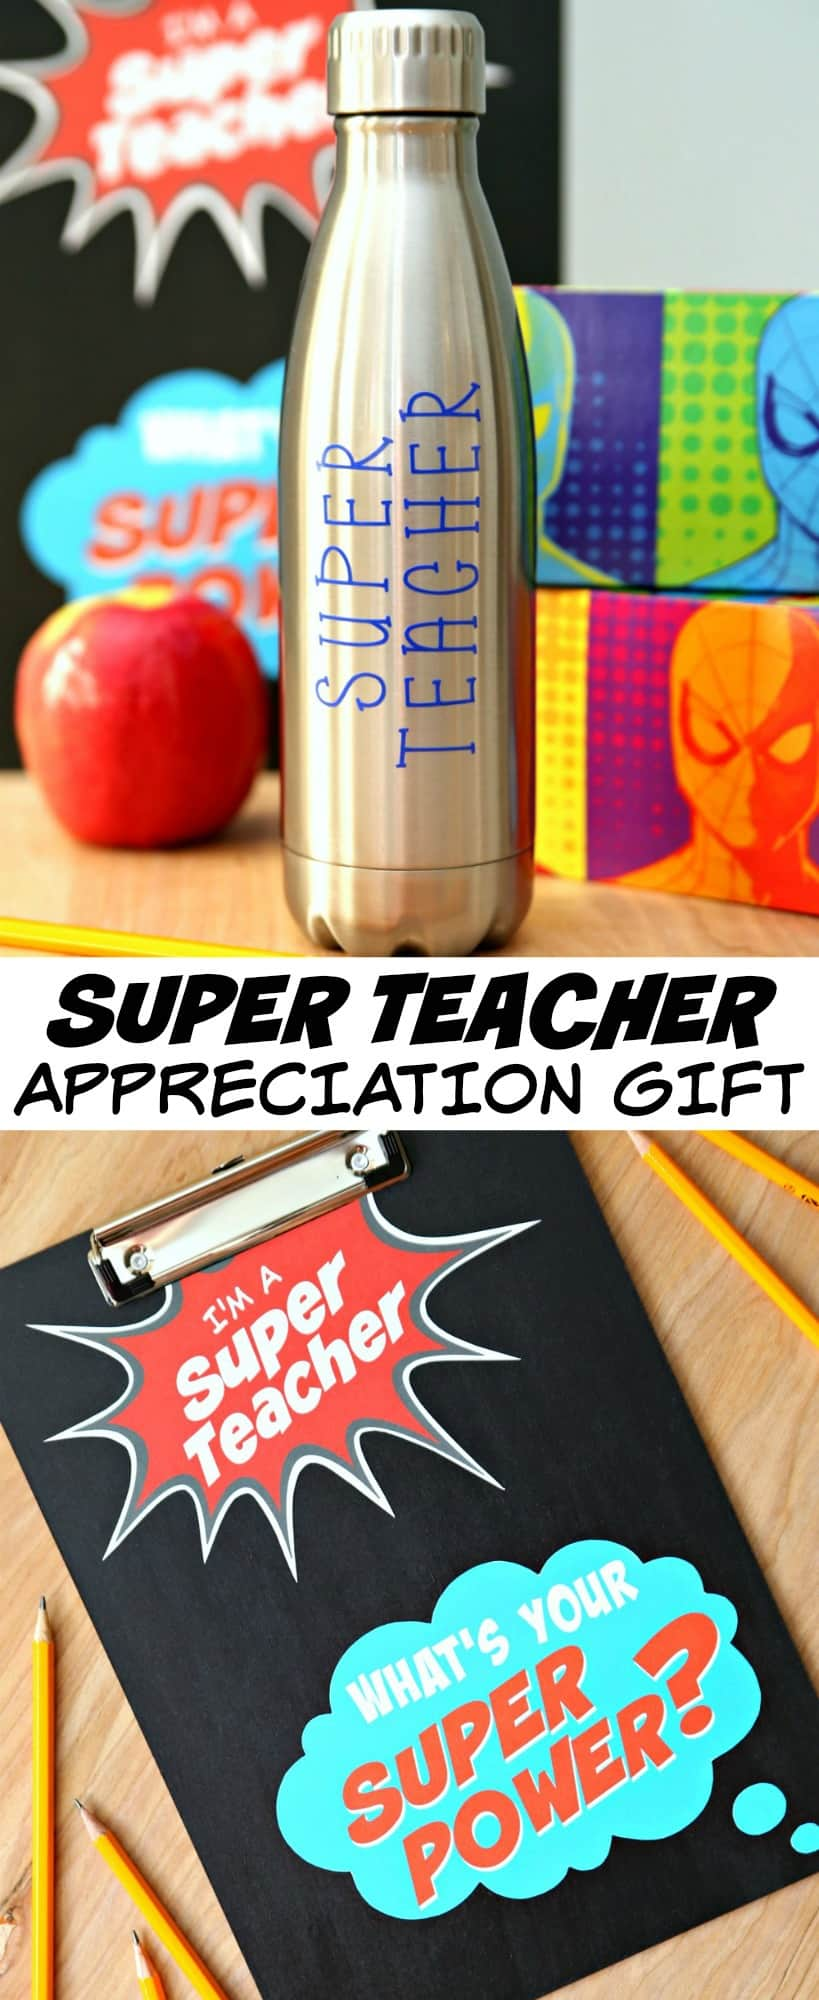 Super Teacher Appreciatio Gift 2